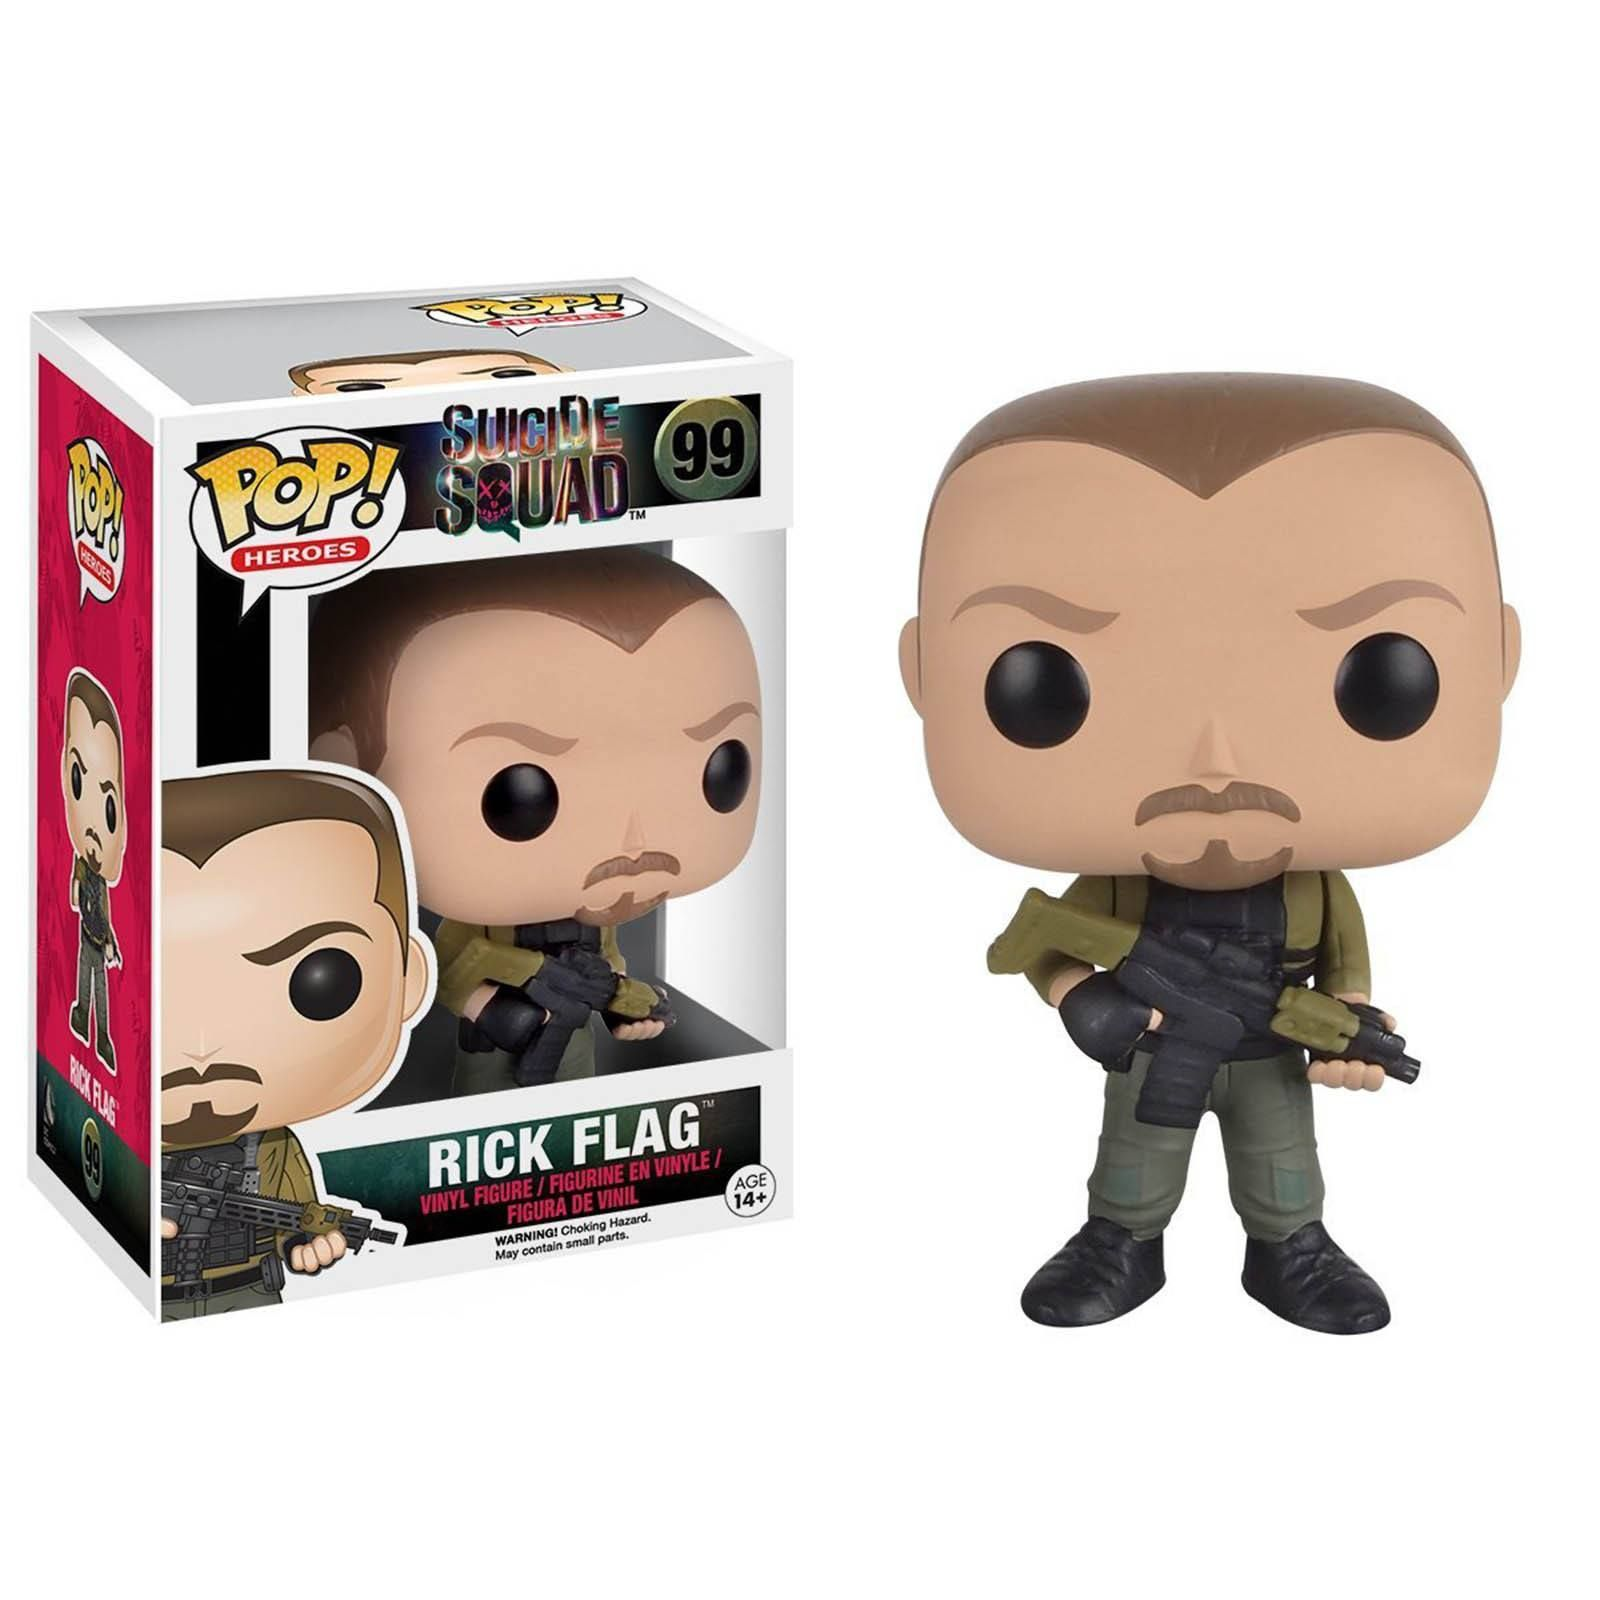 This is a Suicide Squad POP Rick Flag Vinyl Figure that is produced by Funko. With the new movie coming out, these villains are excited to get their own POP vinyls. Thanks Funko for more great POPs. R